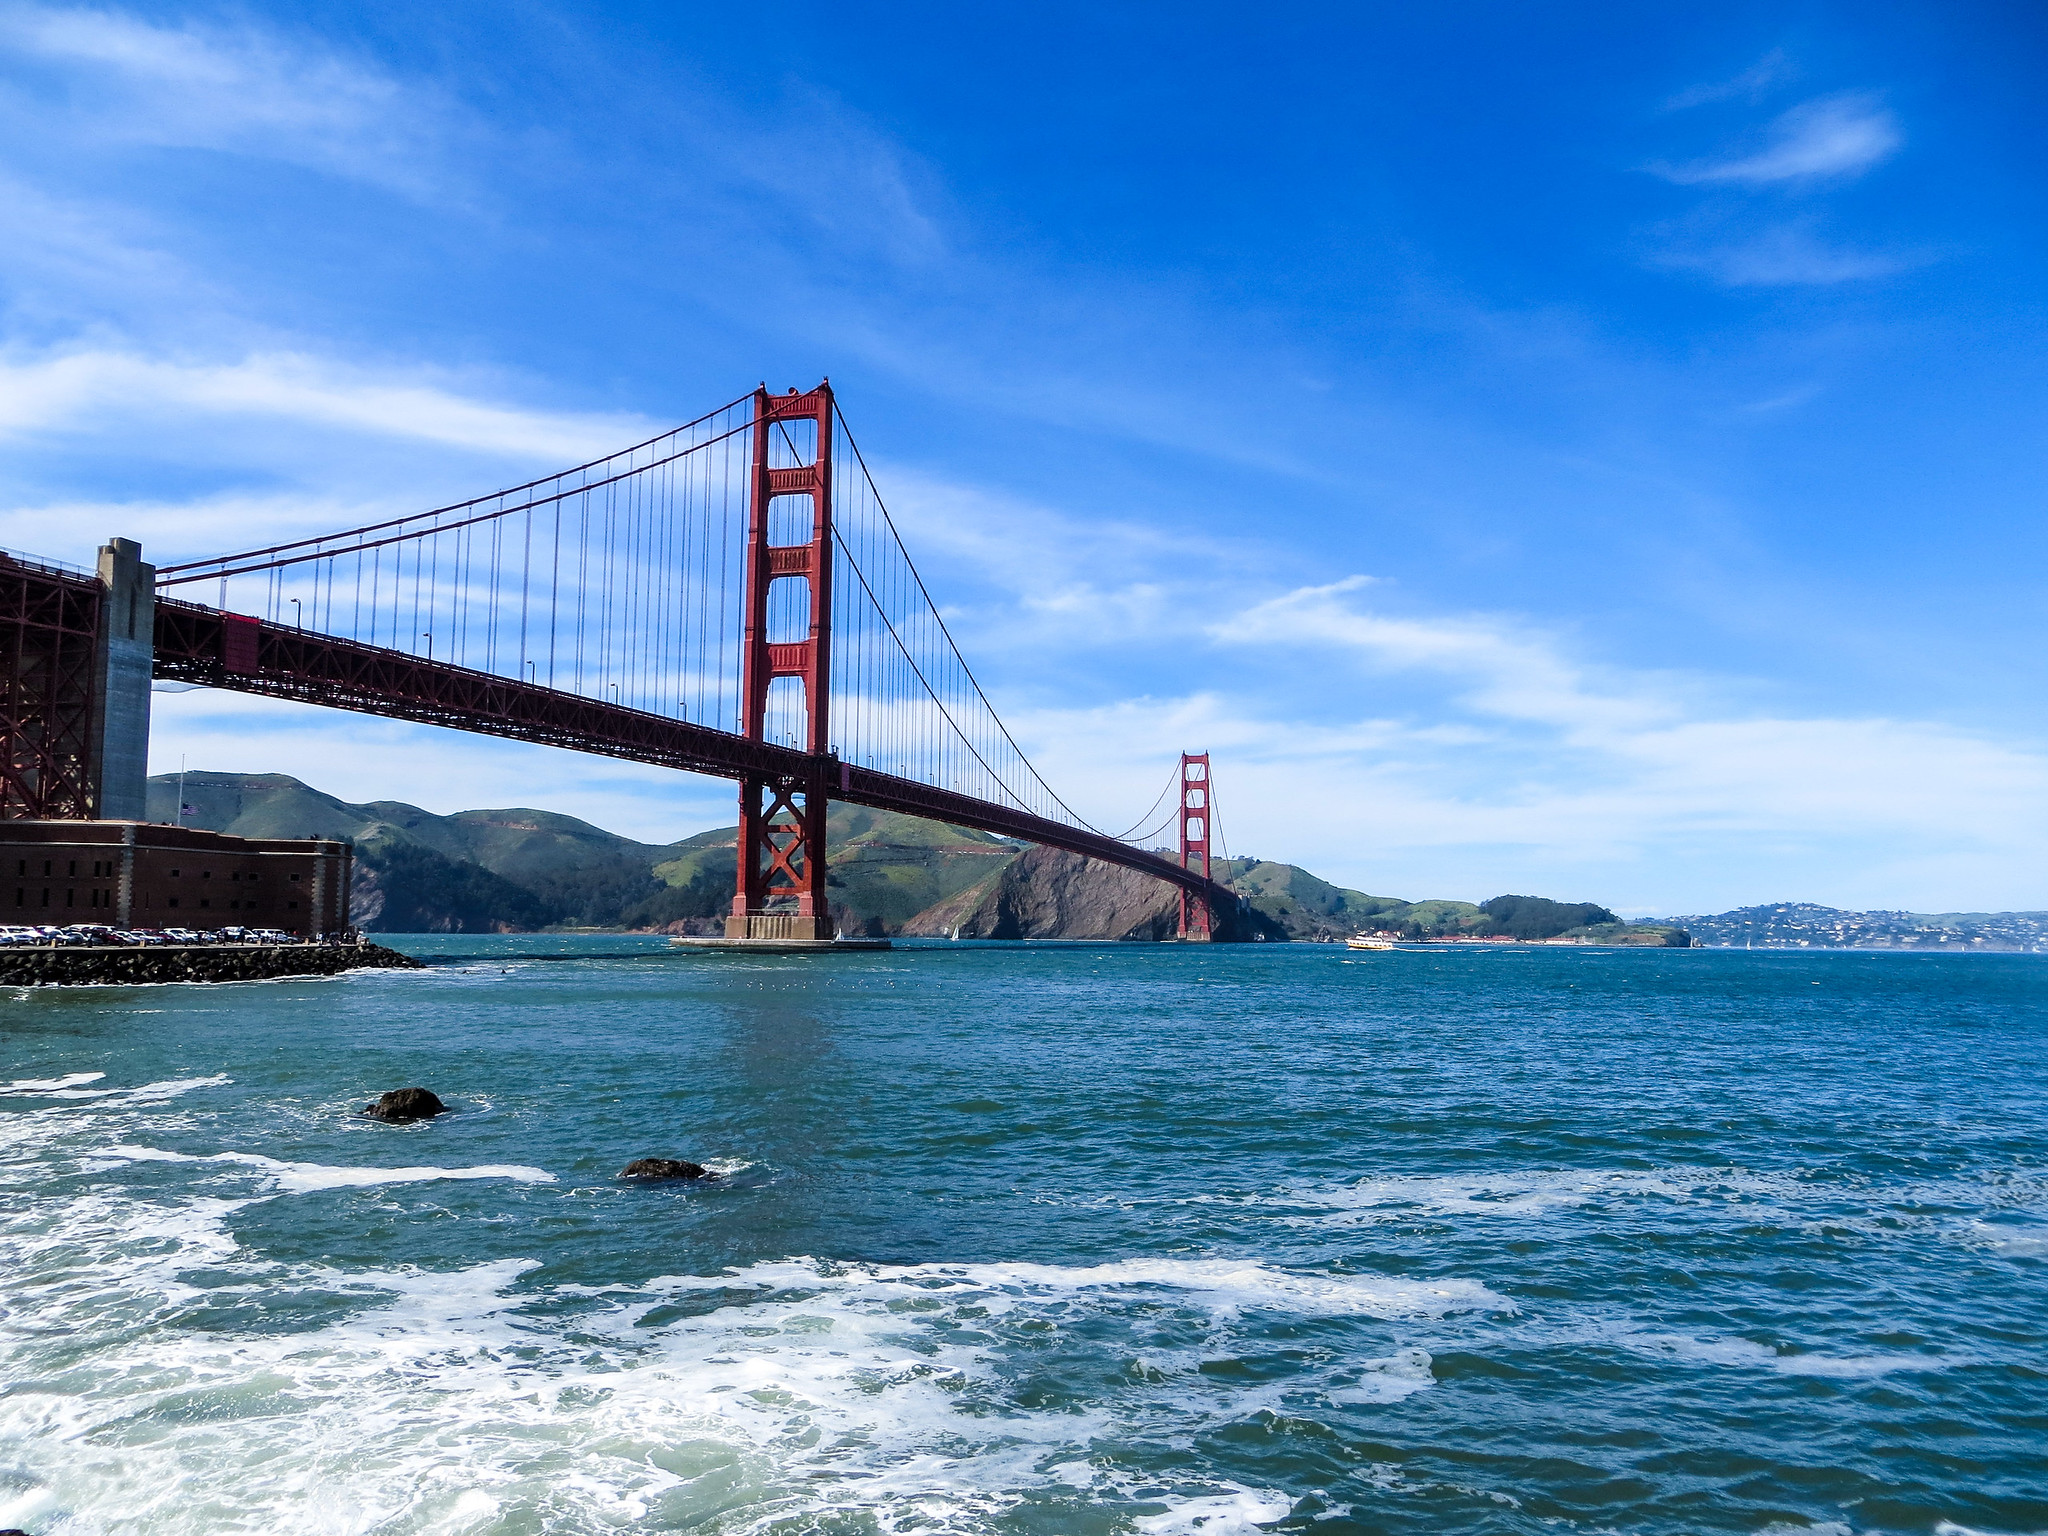 san francisco 2 days trip must include the golden gate bridge